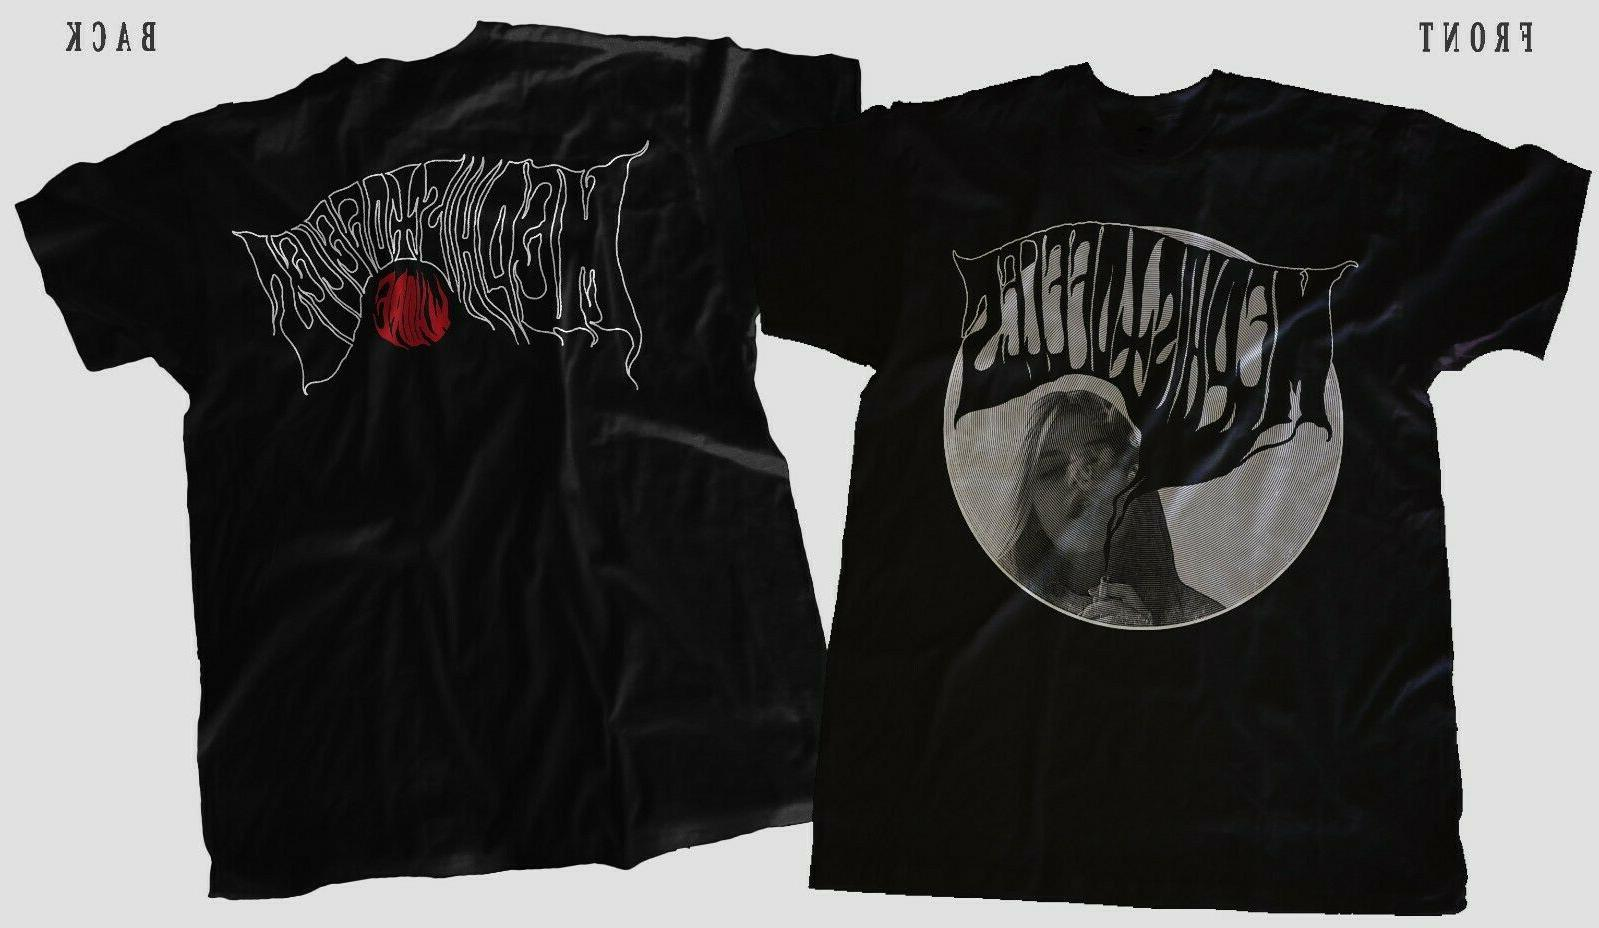 MEPHISTOFELES-Whore-Metal Band, T-shirt sizes: S to